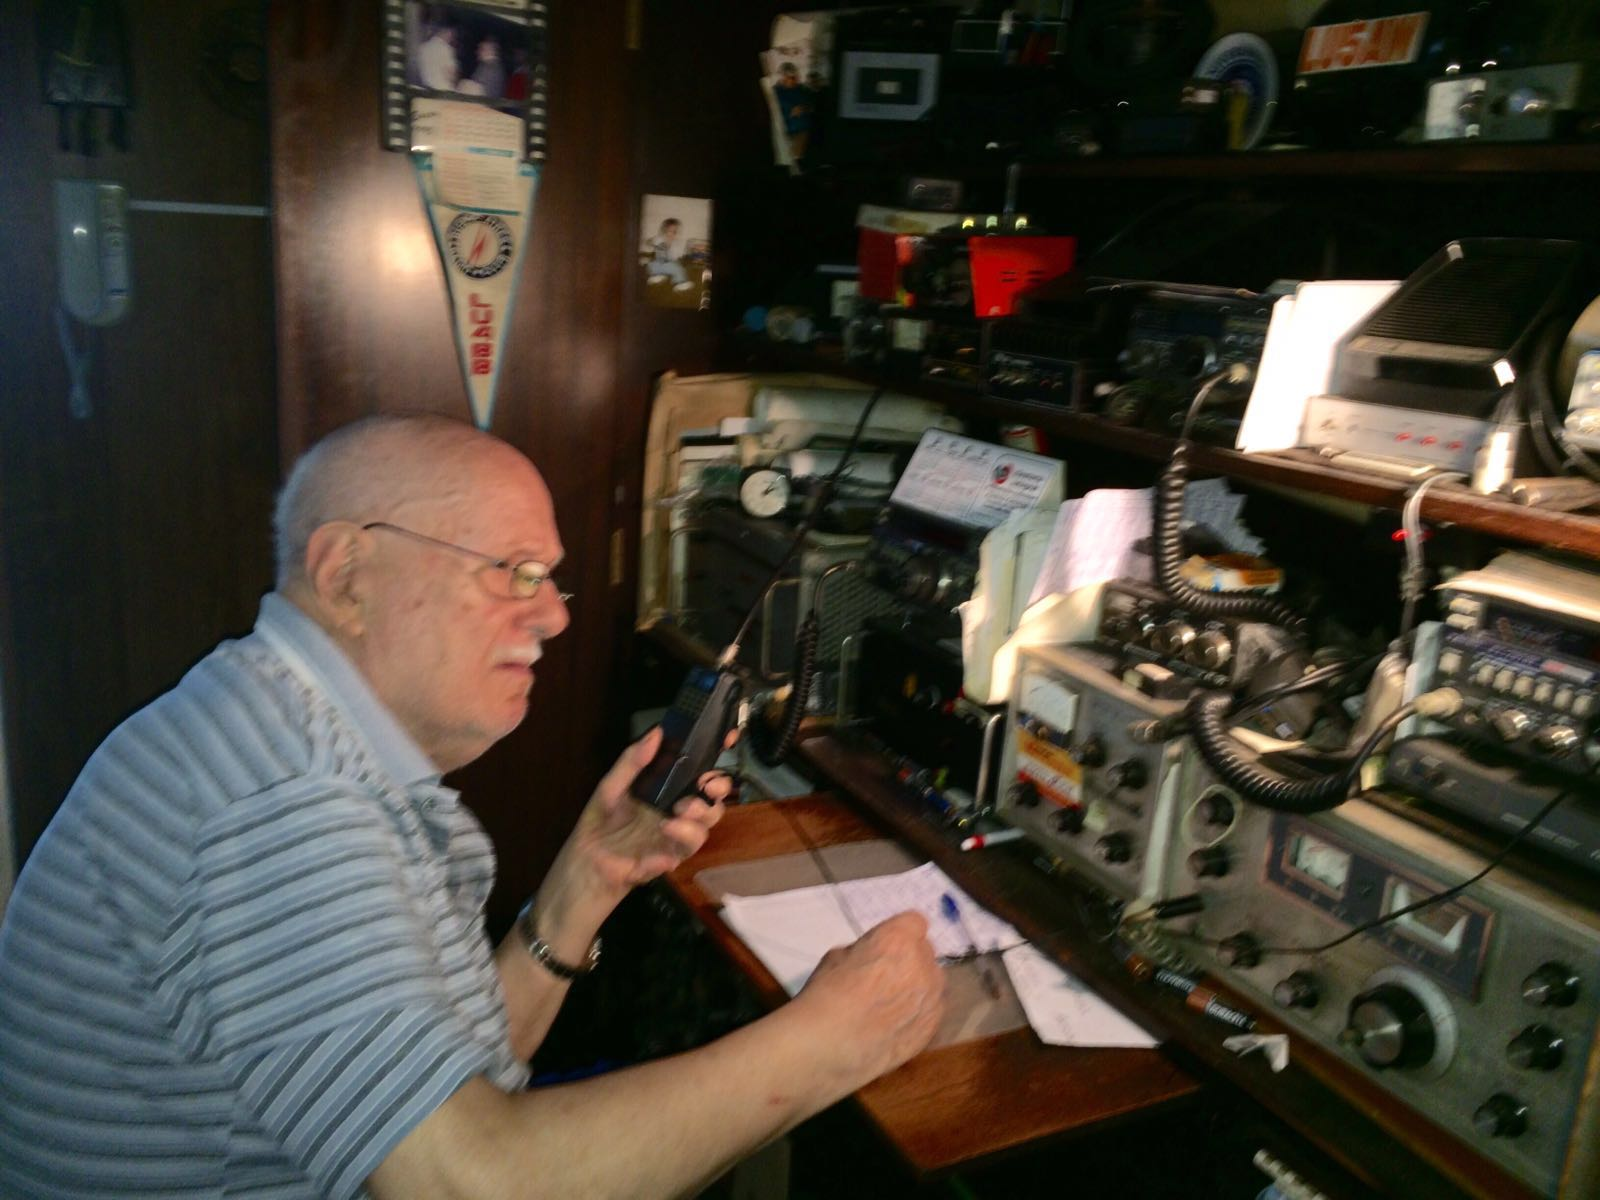 Oldest amateur radio operator (ham)